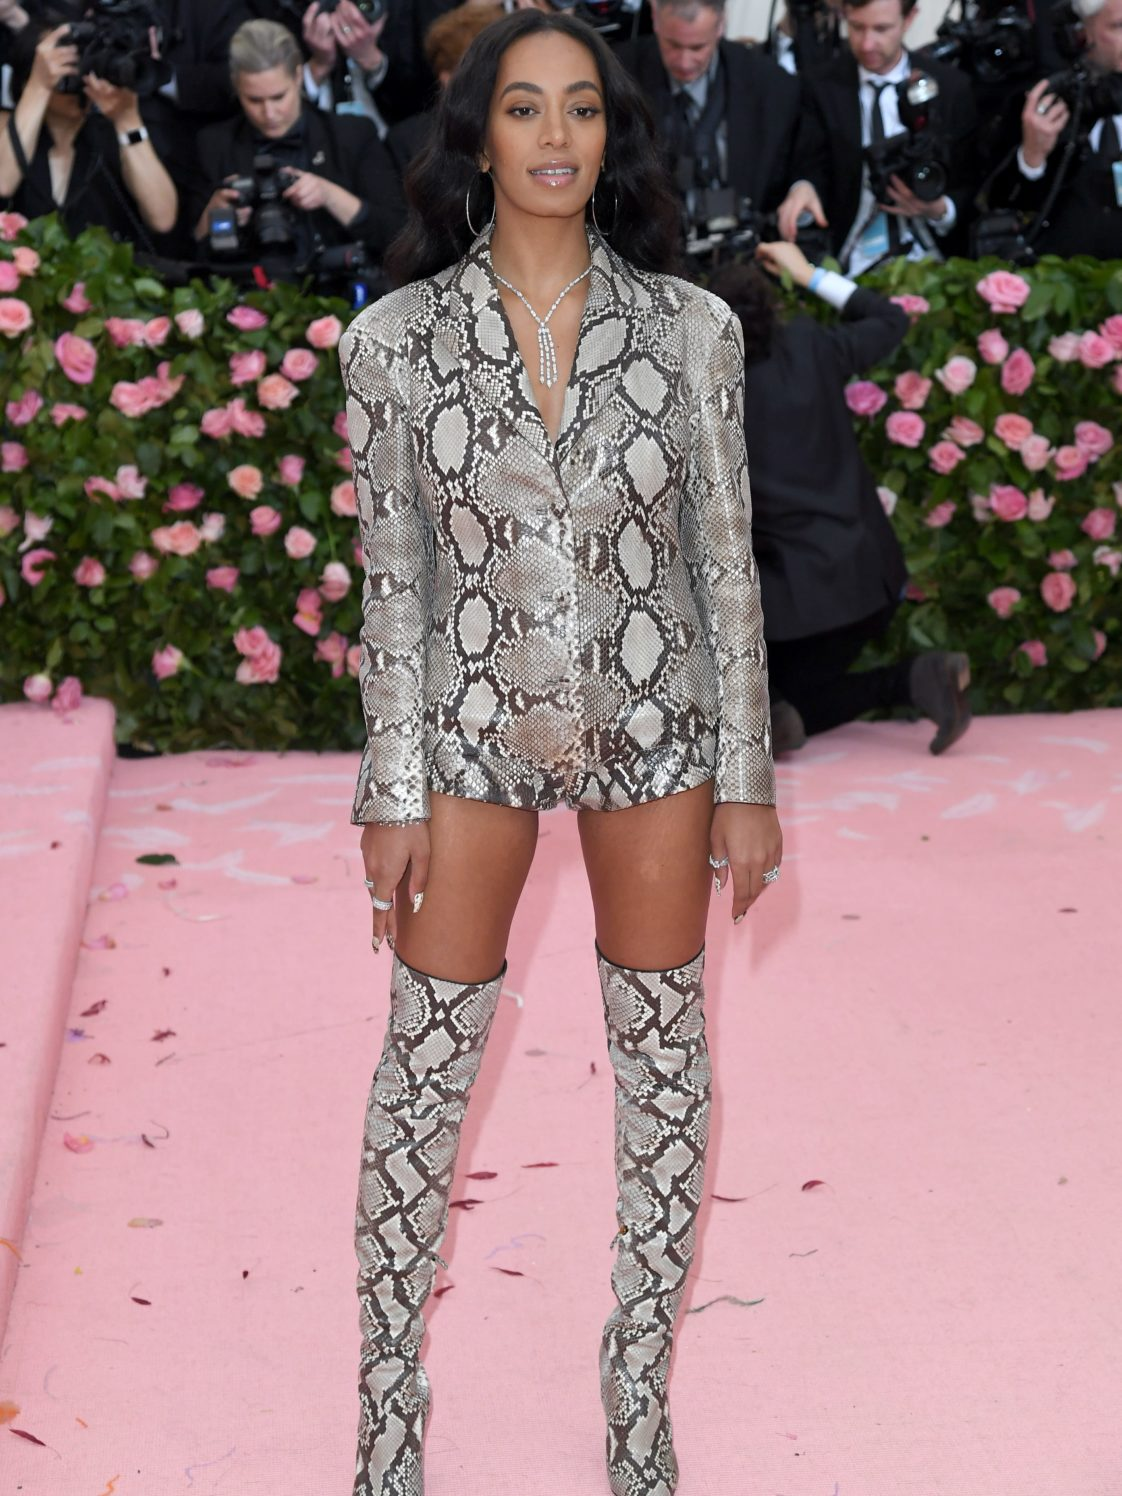 solange-knowles-in-salvatore-ferragamo-2019-met-gala-2